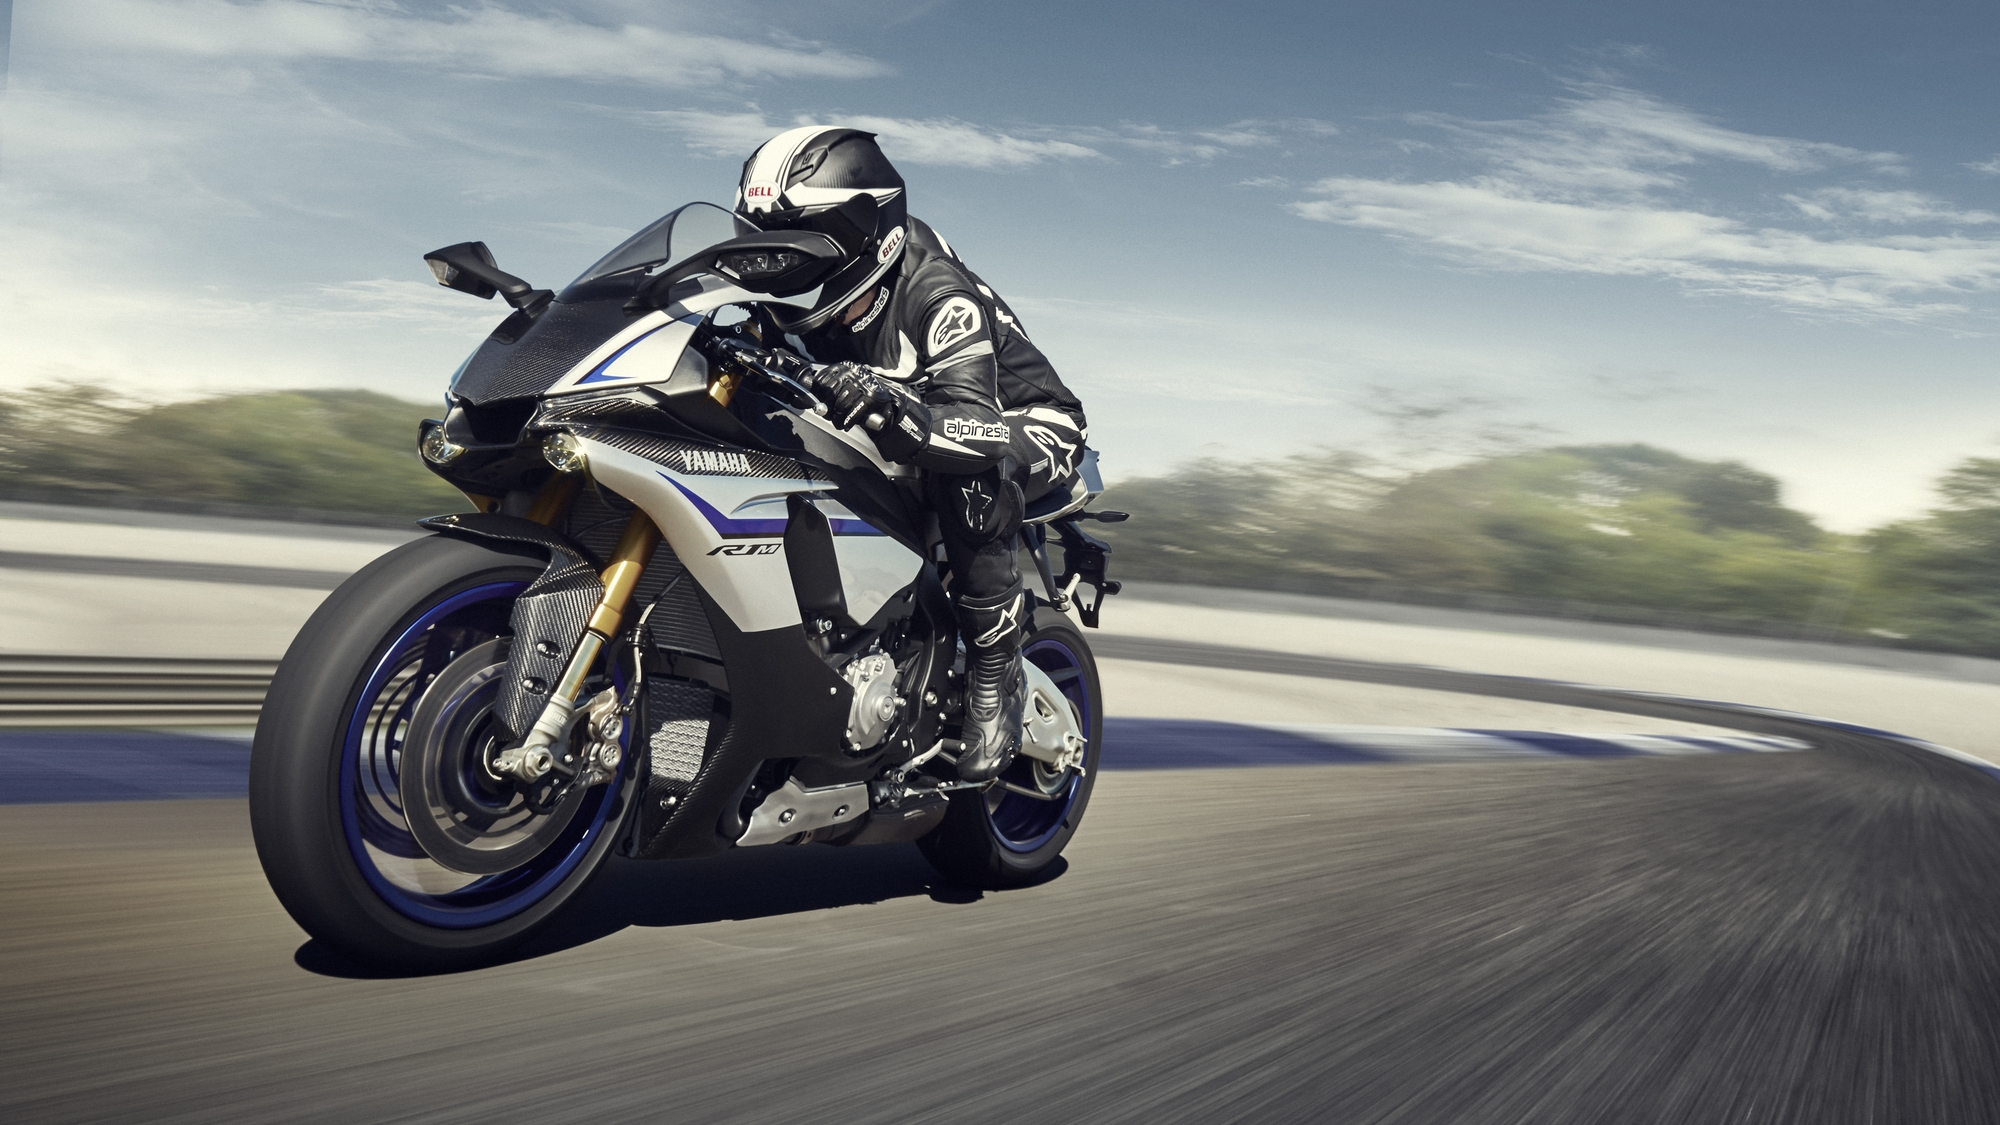 India-bound 2015 Yamaha R1 costs Rs. 15 lakh in UK